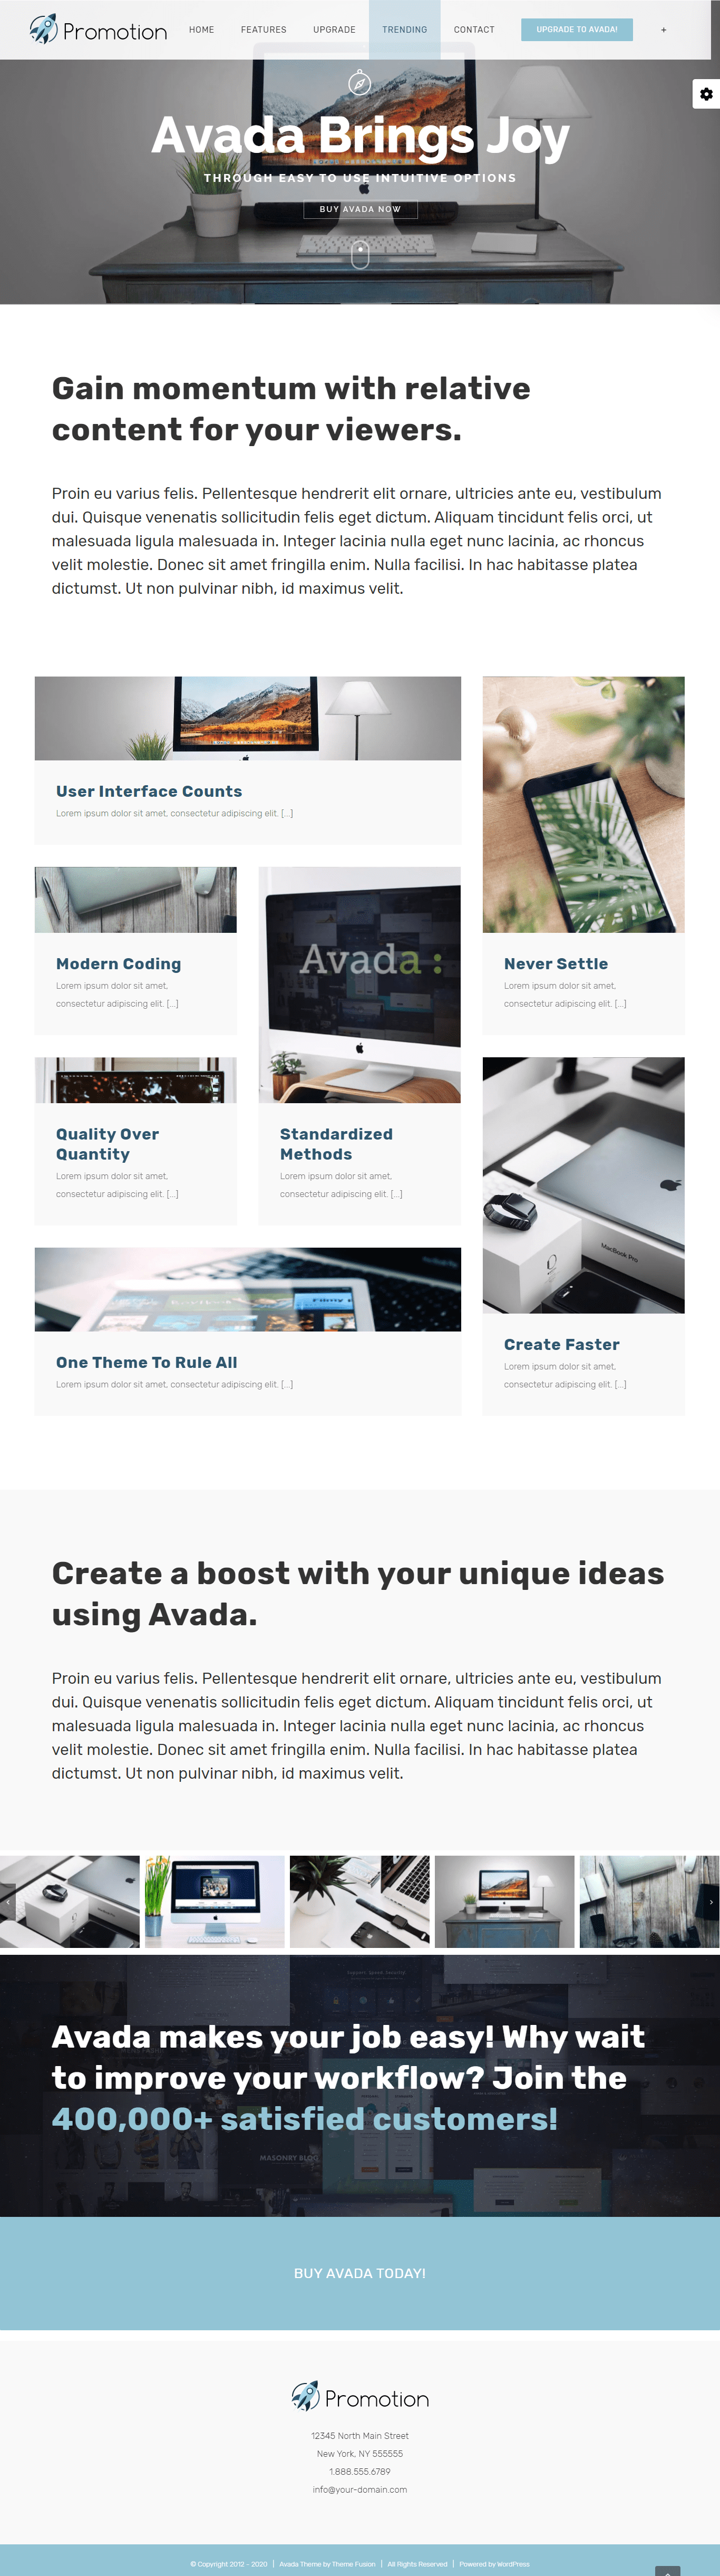 63 Proofs That Professional Web Design Business Is Exactly What You Are Looking For In 2020 Professional Web Design Business Design Web Design